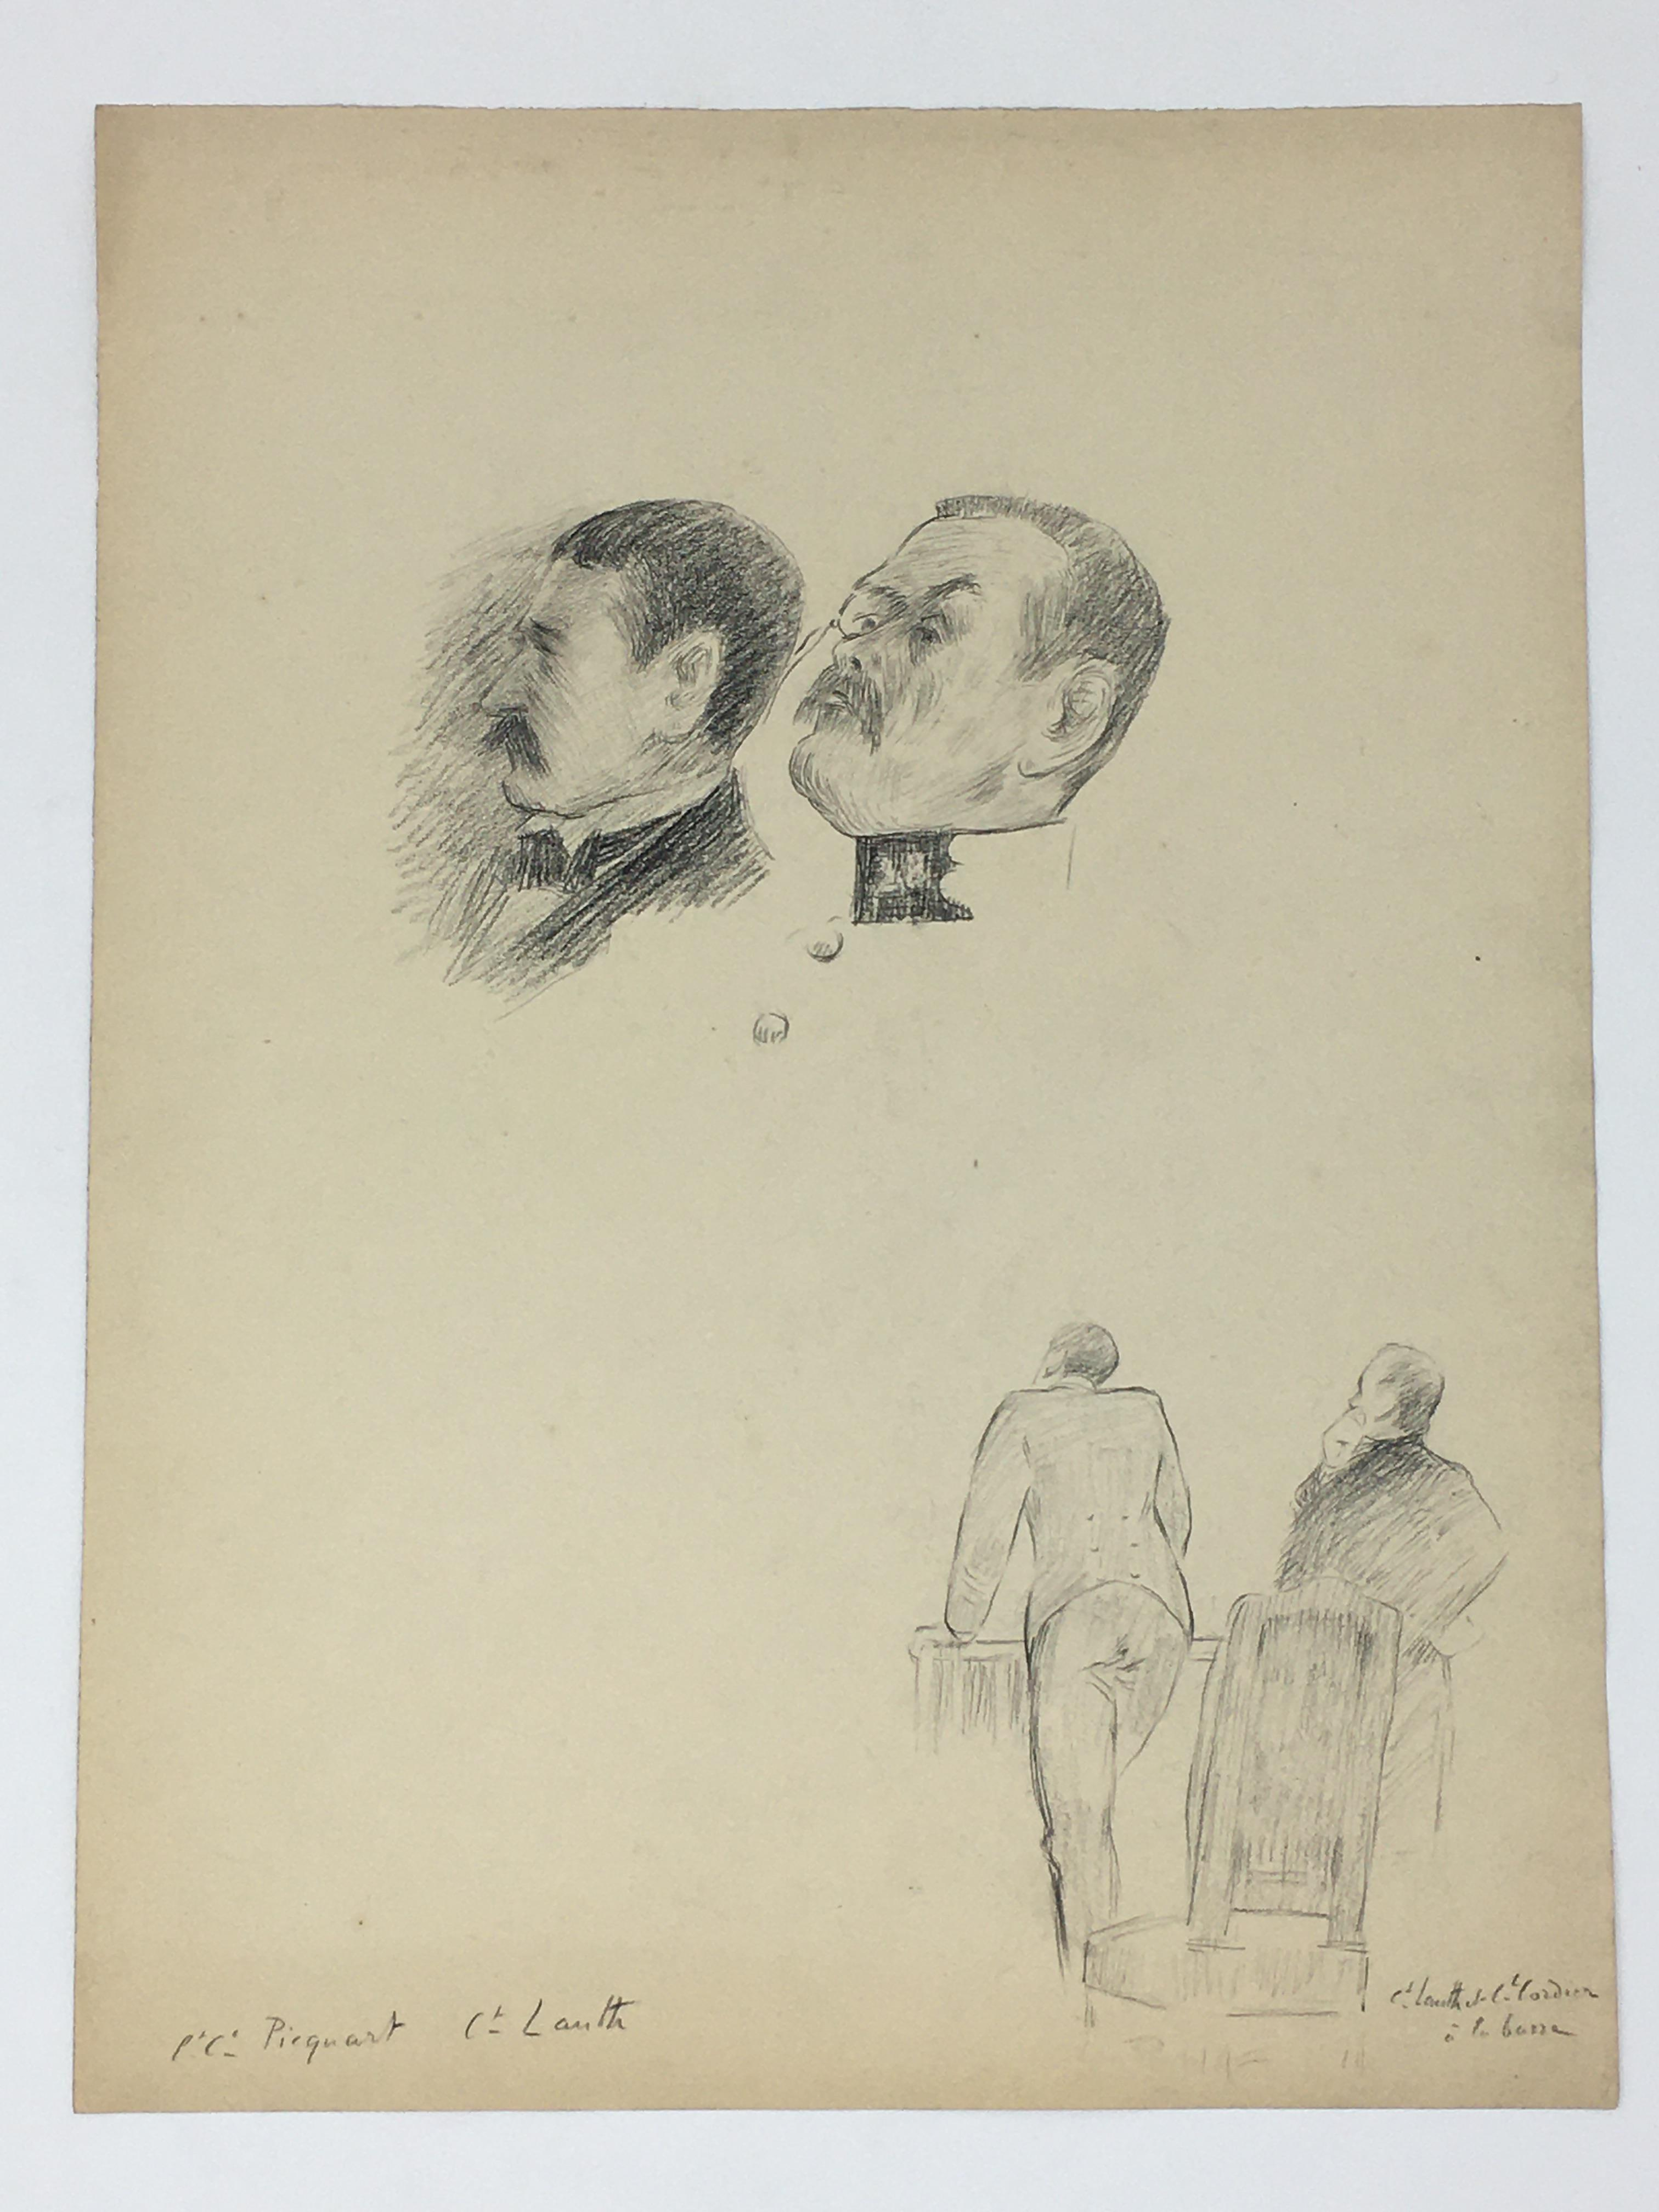 J'Accuse Newspaper, Emile Zola Quote, Signed Dreyfus Portrait, Rare Trial Drawings & Schwartzkoppen - Image 49 of 74